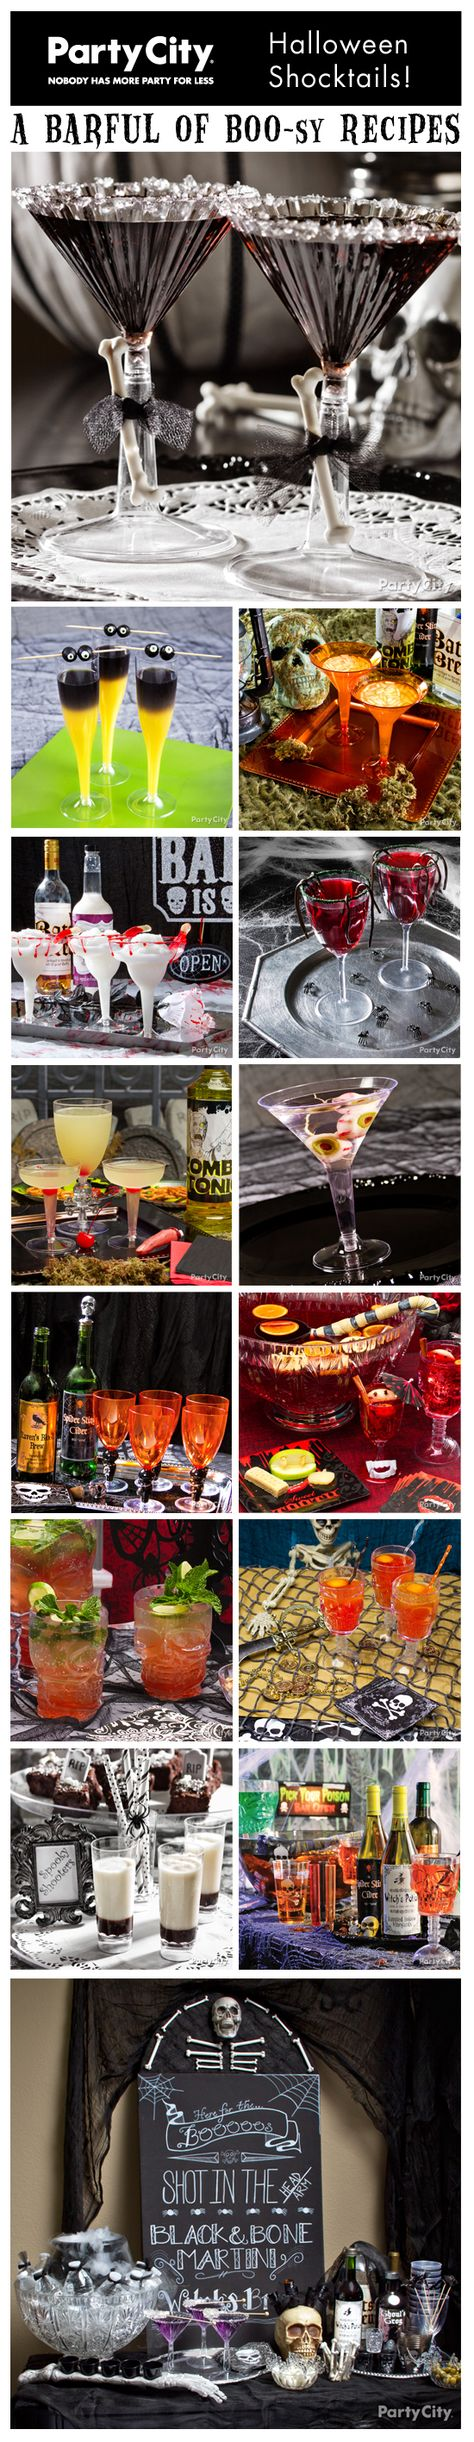 Pour on the freaky fun with Halloween cocktail ideas! Click for shriek-worthy recipes and to-die-for bar ideas. Muah-haha!